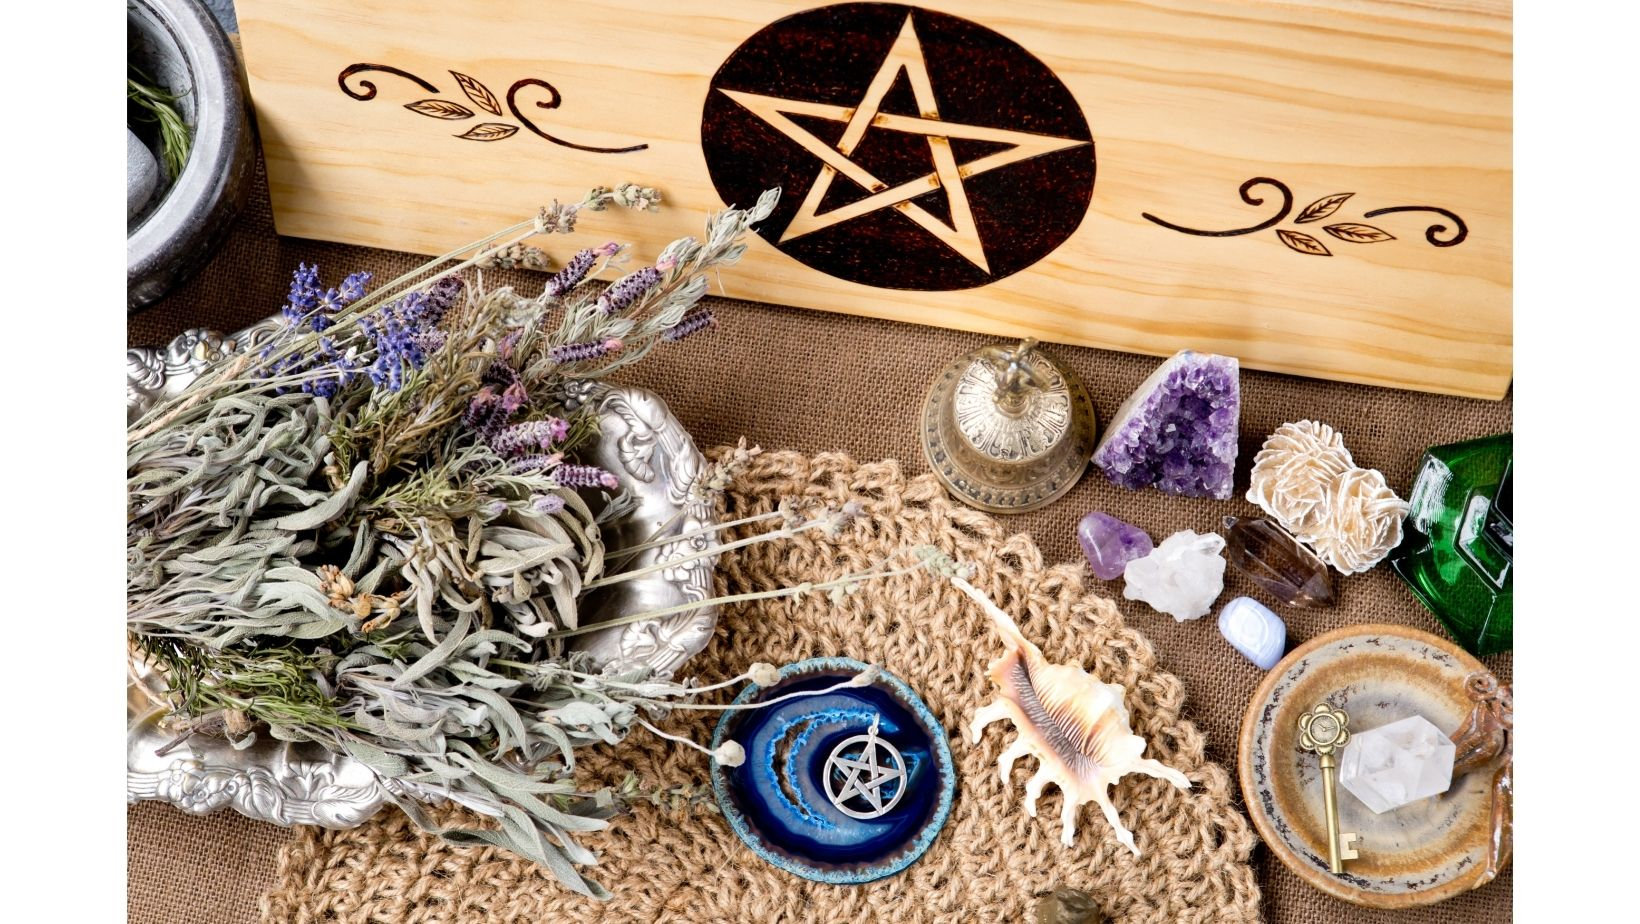 School of Wicca and Witchcraft